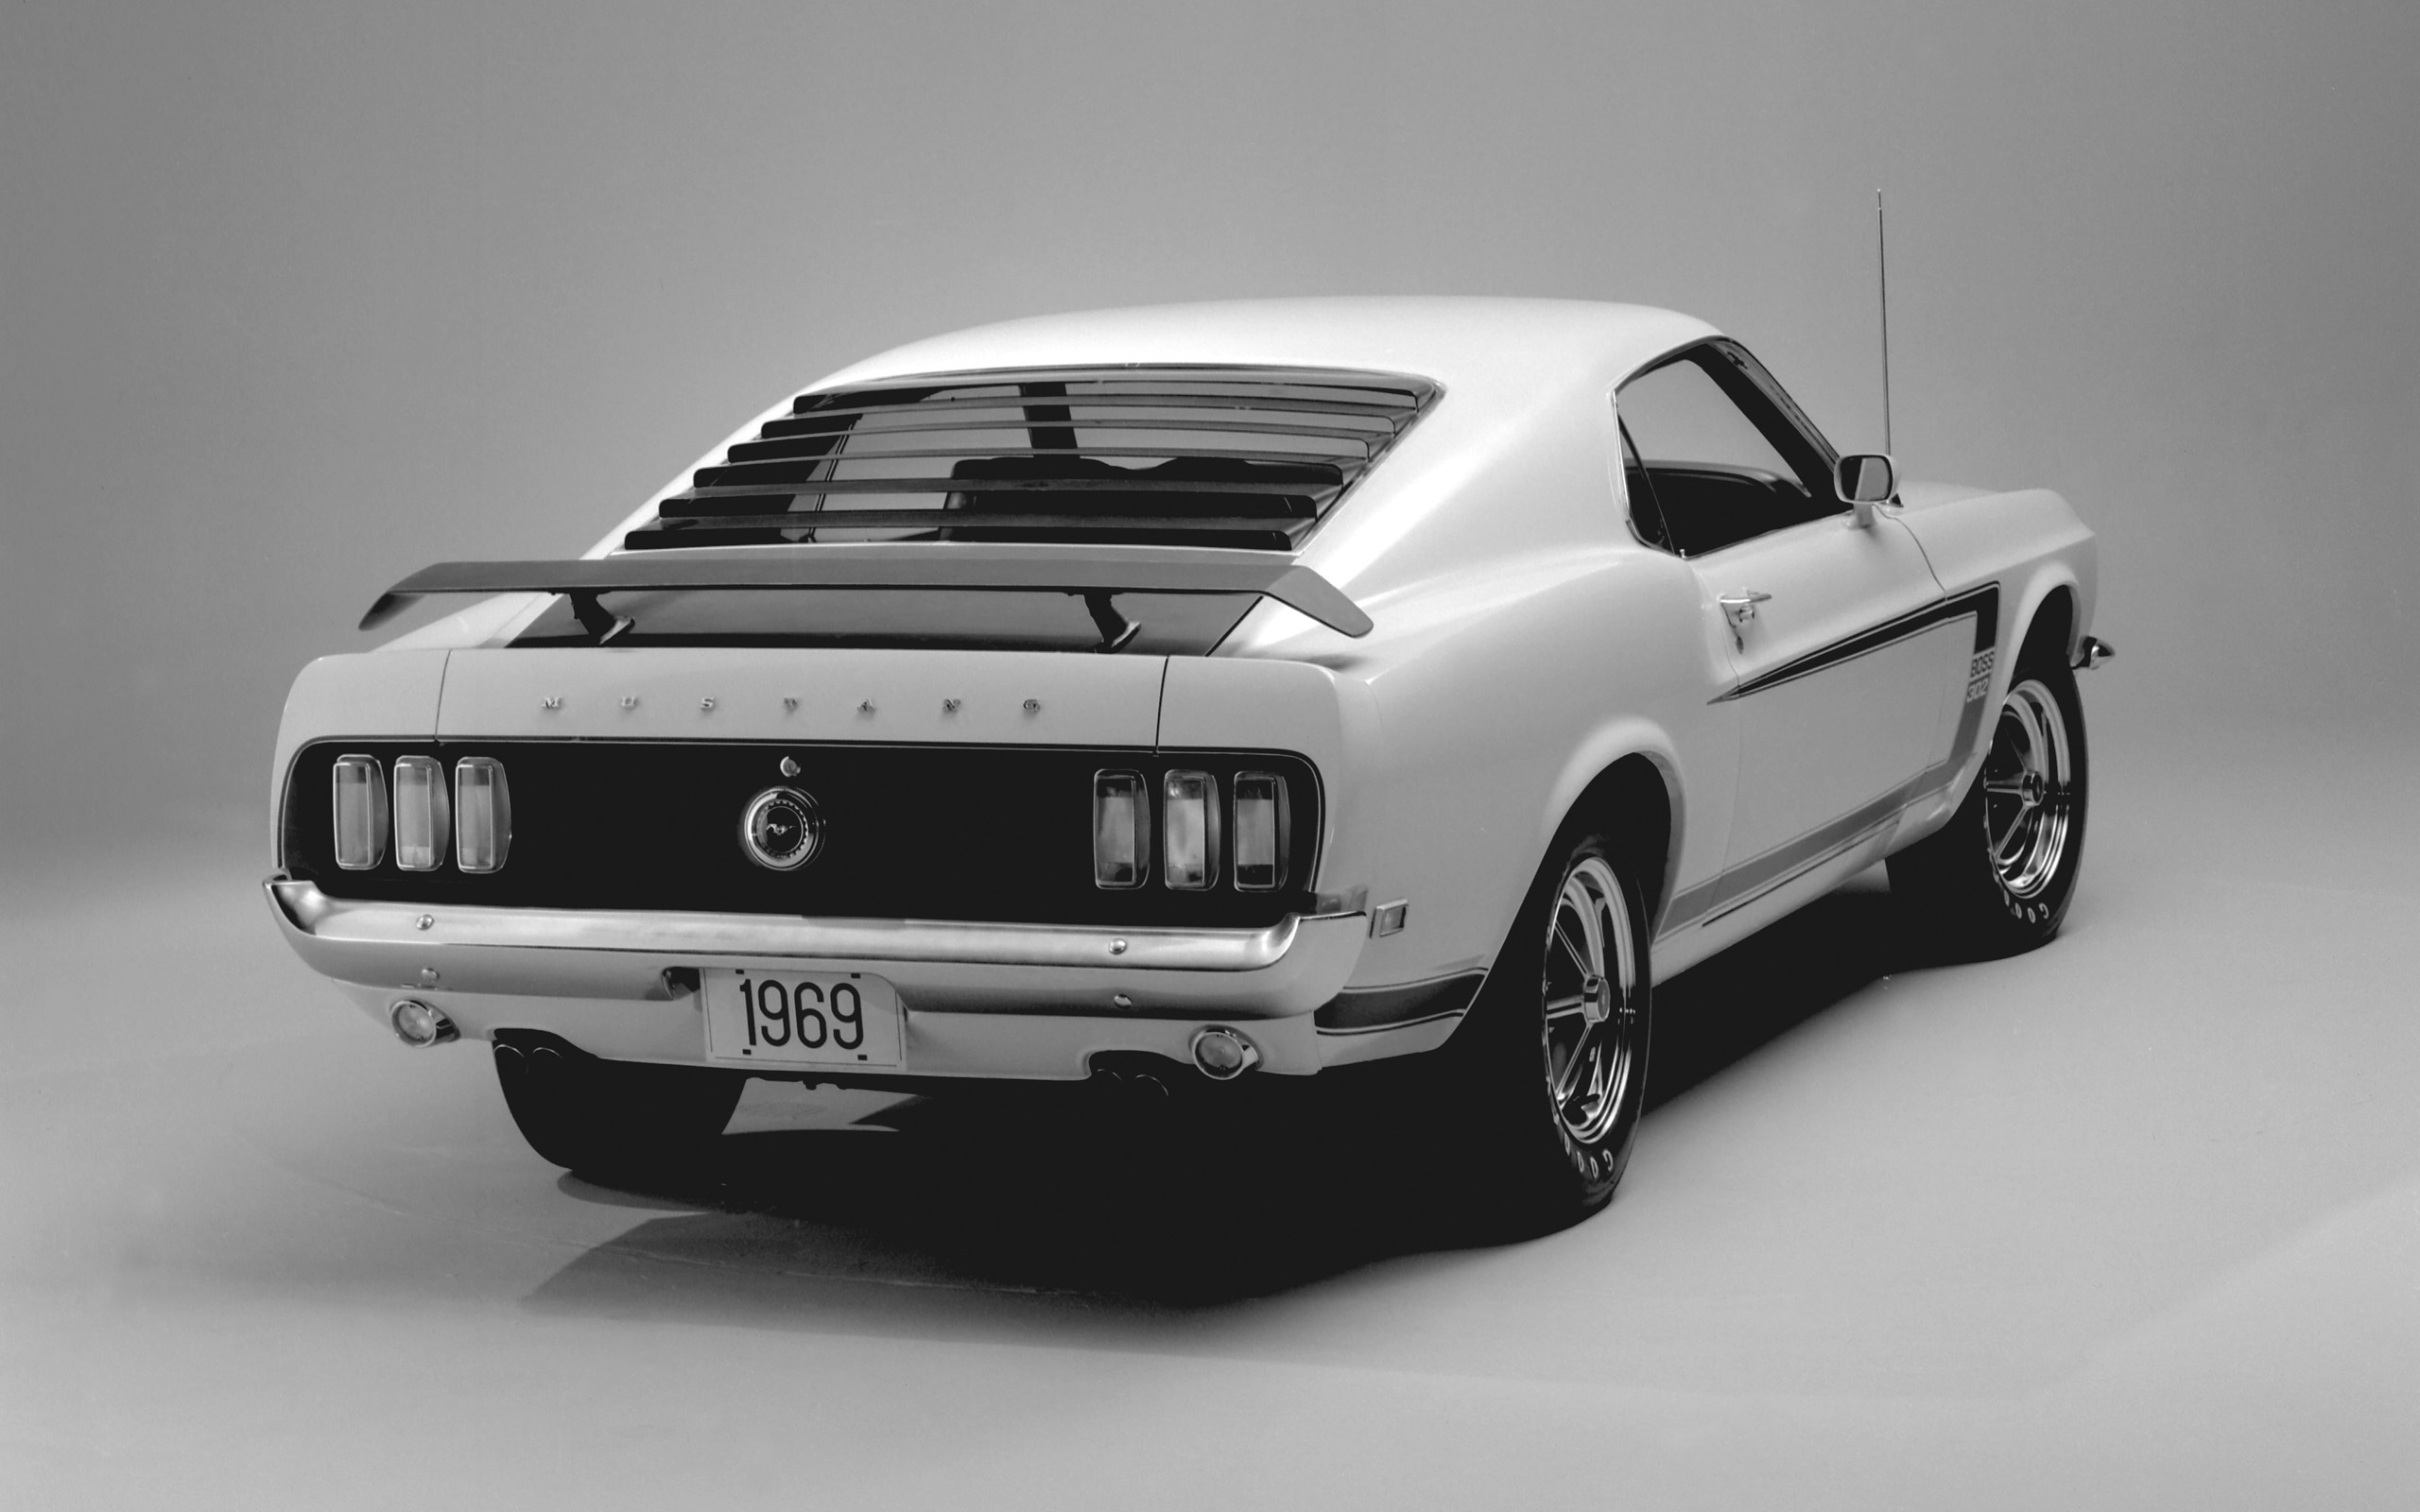 1969 Ford Mustang Boss 302 Hd Wallpaper Background Image Muscle Car Wallpapers Id930982